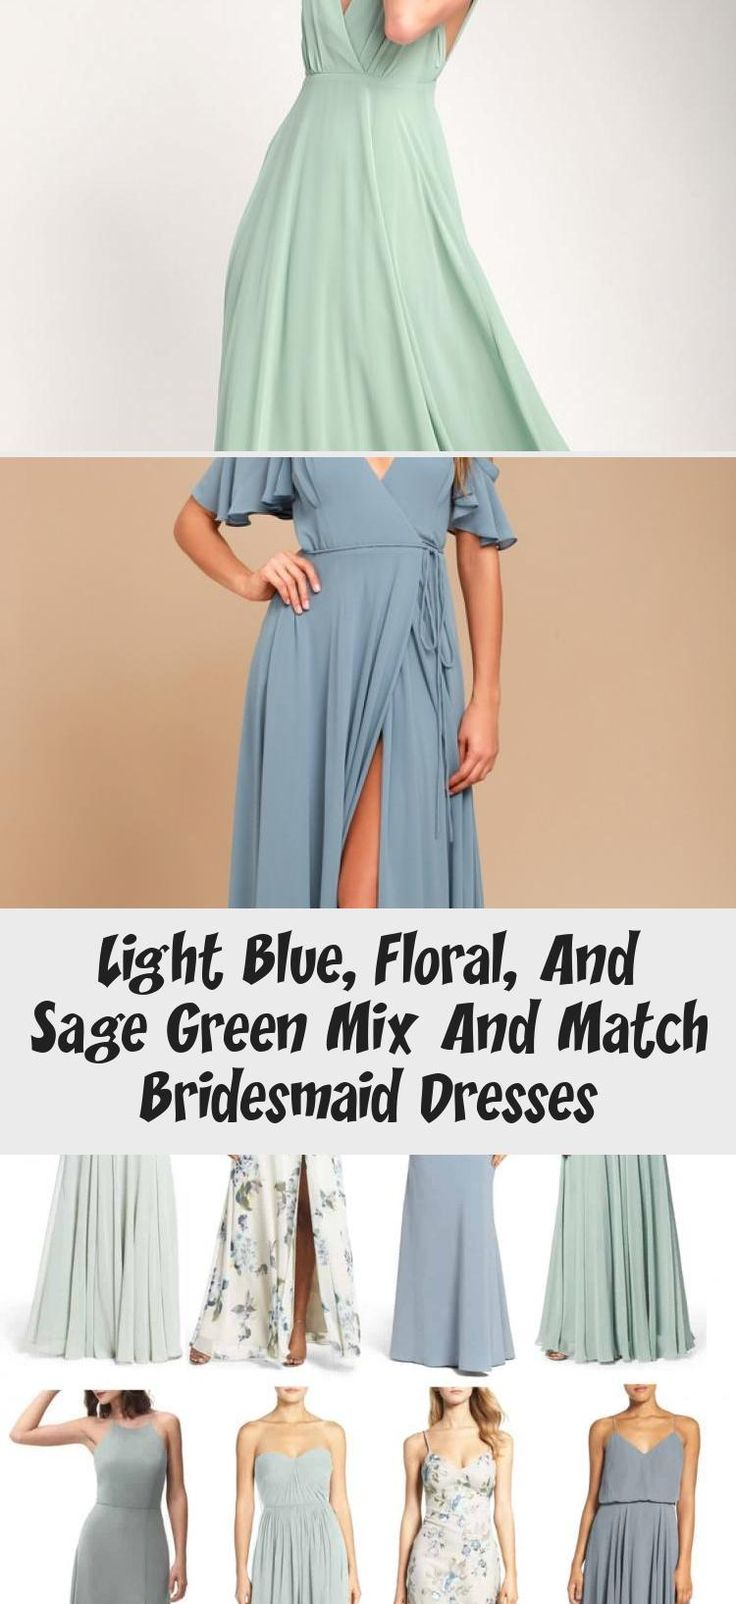 Blue floral and mist sage green mismatched bridesmaid dresses by Jenny Yoo #NeutralBridesmaidDresses #UniqueBridesmaidDresses #BridesmaidDressesColors #PlumBridesmaidDresses #BridesmaidDressesWithSleeves